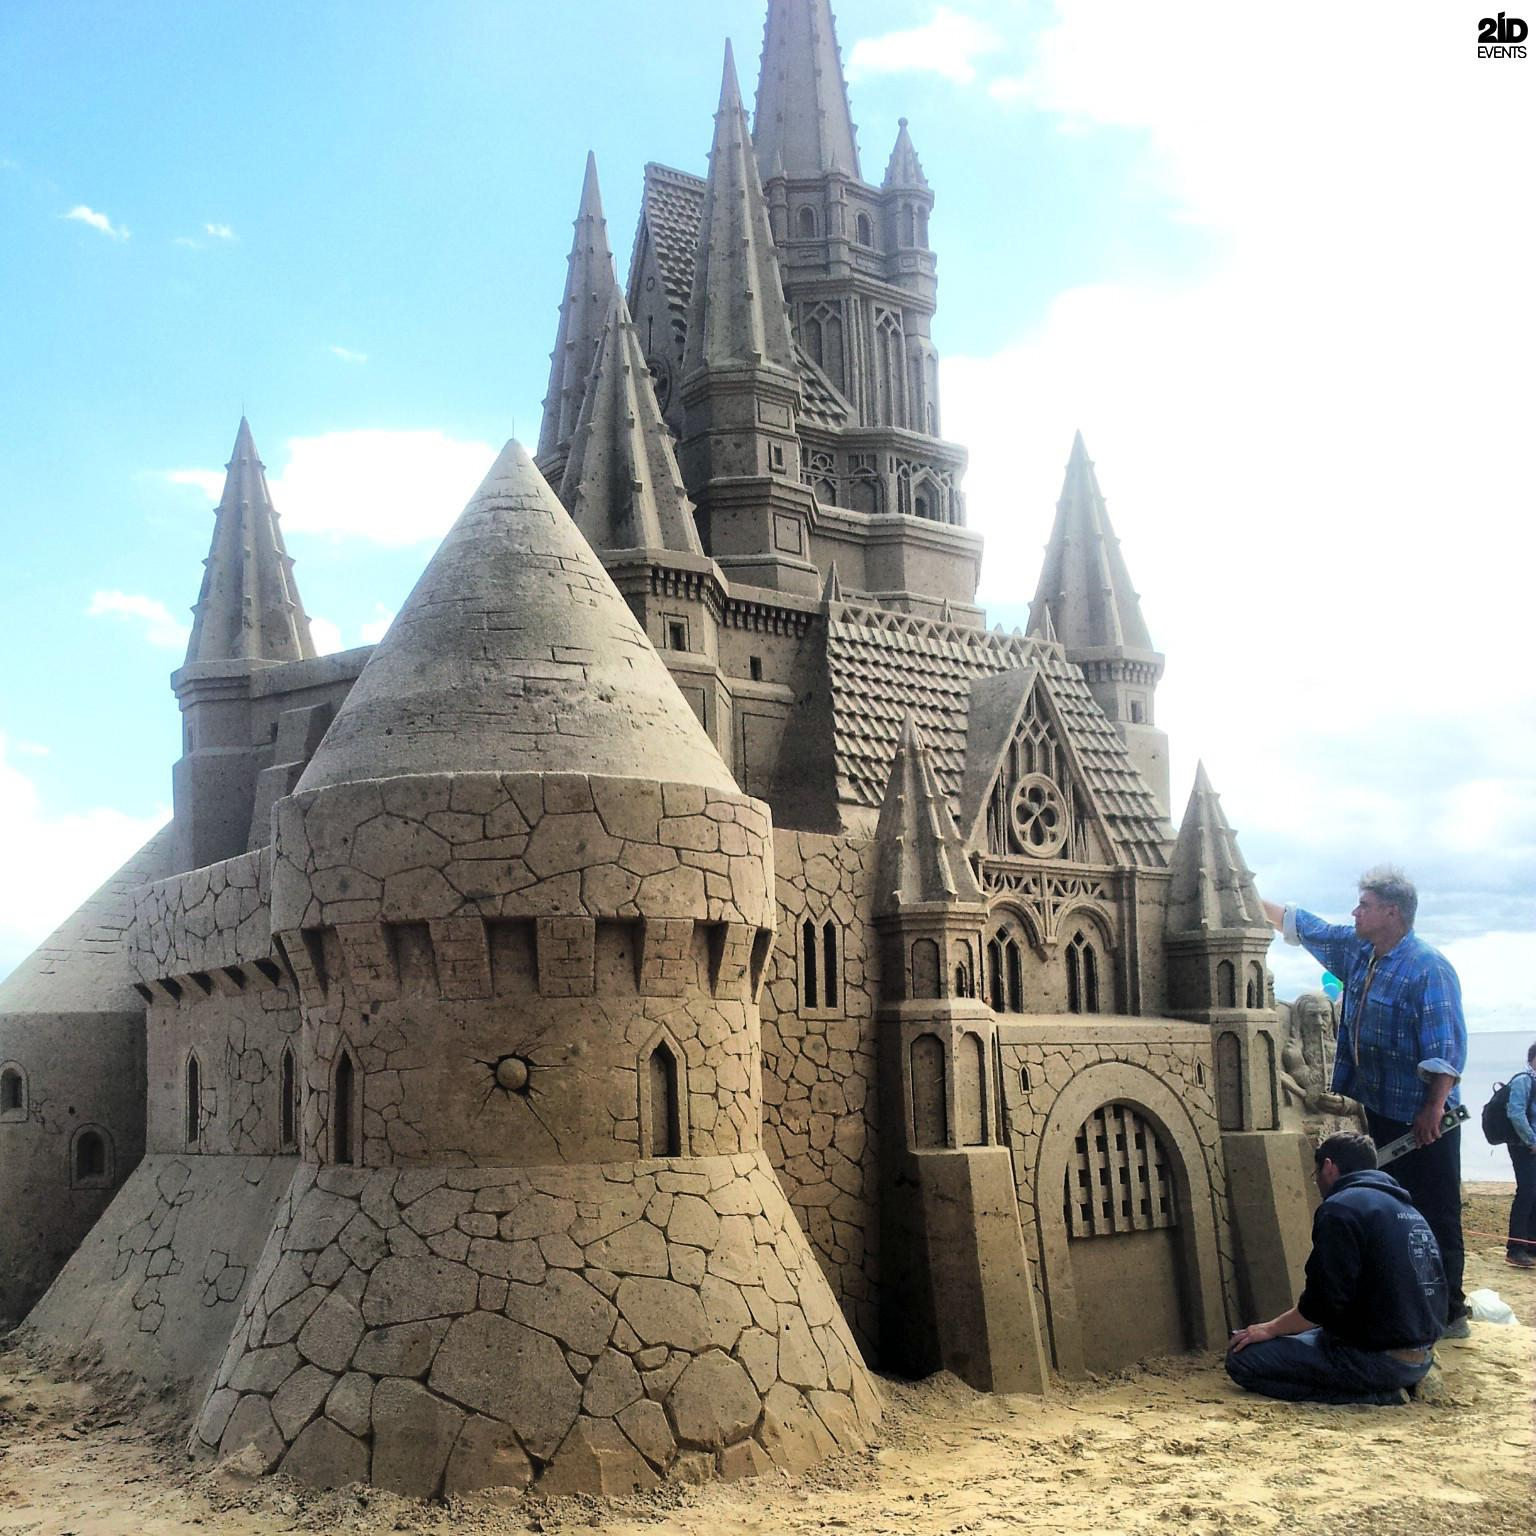 MALE SAND SCULPTURE ARTIST FOR PRIVATE EVENTS